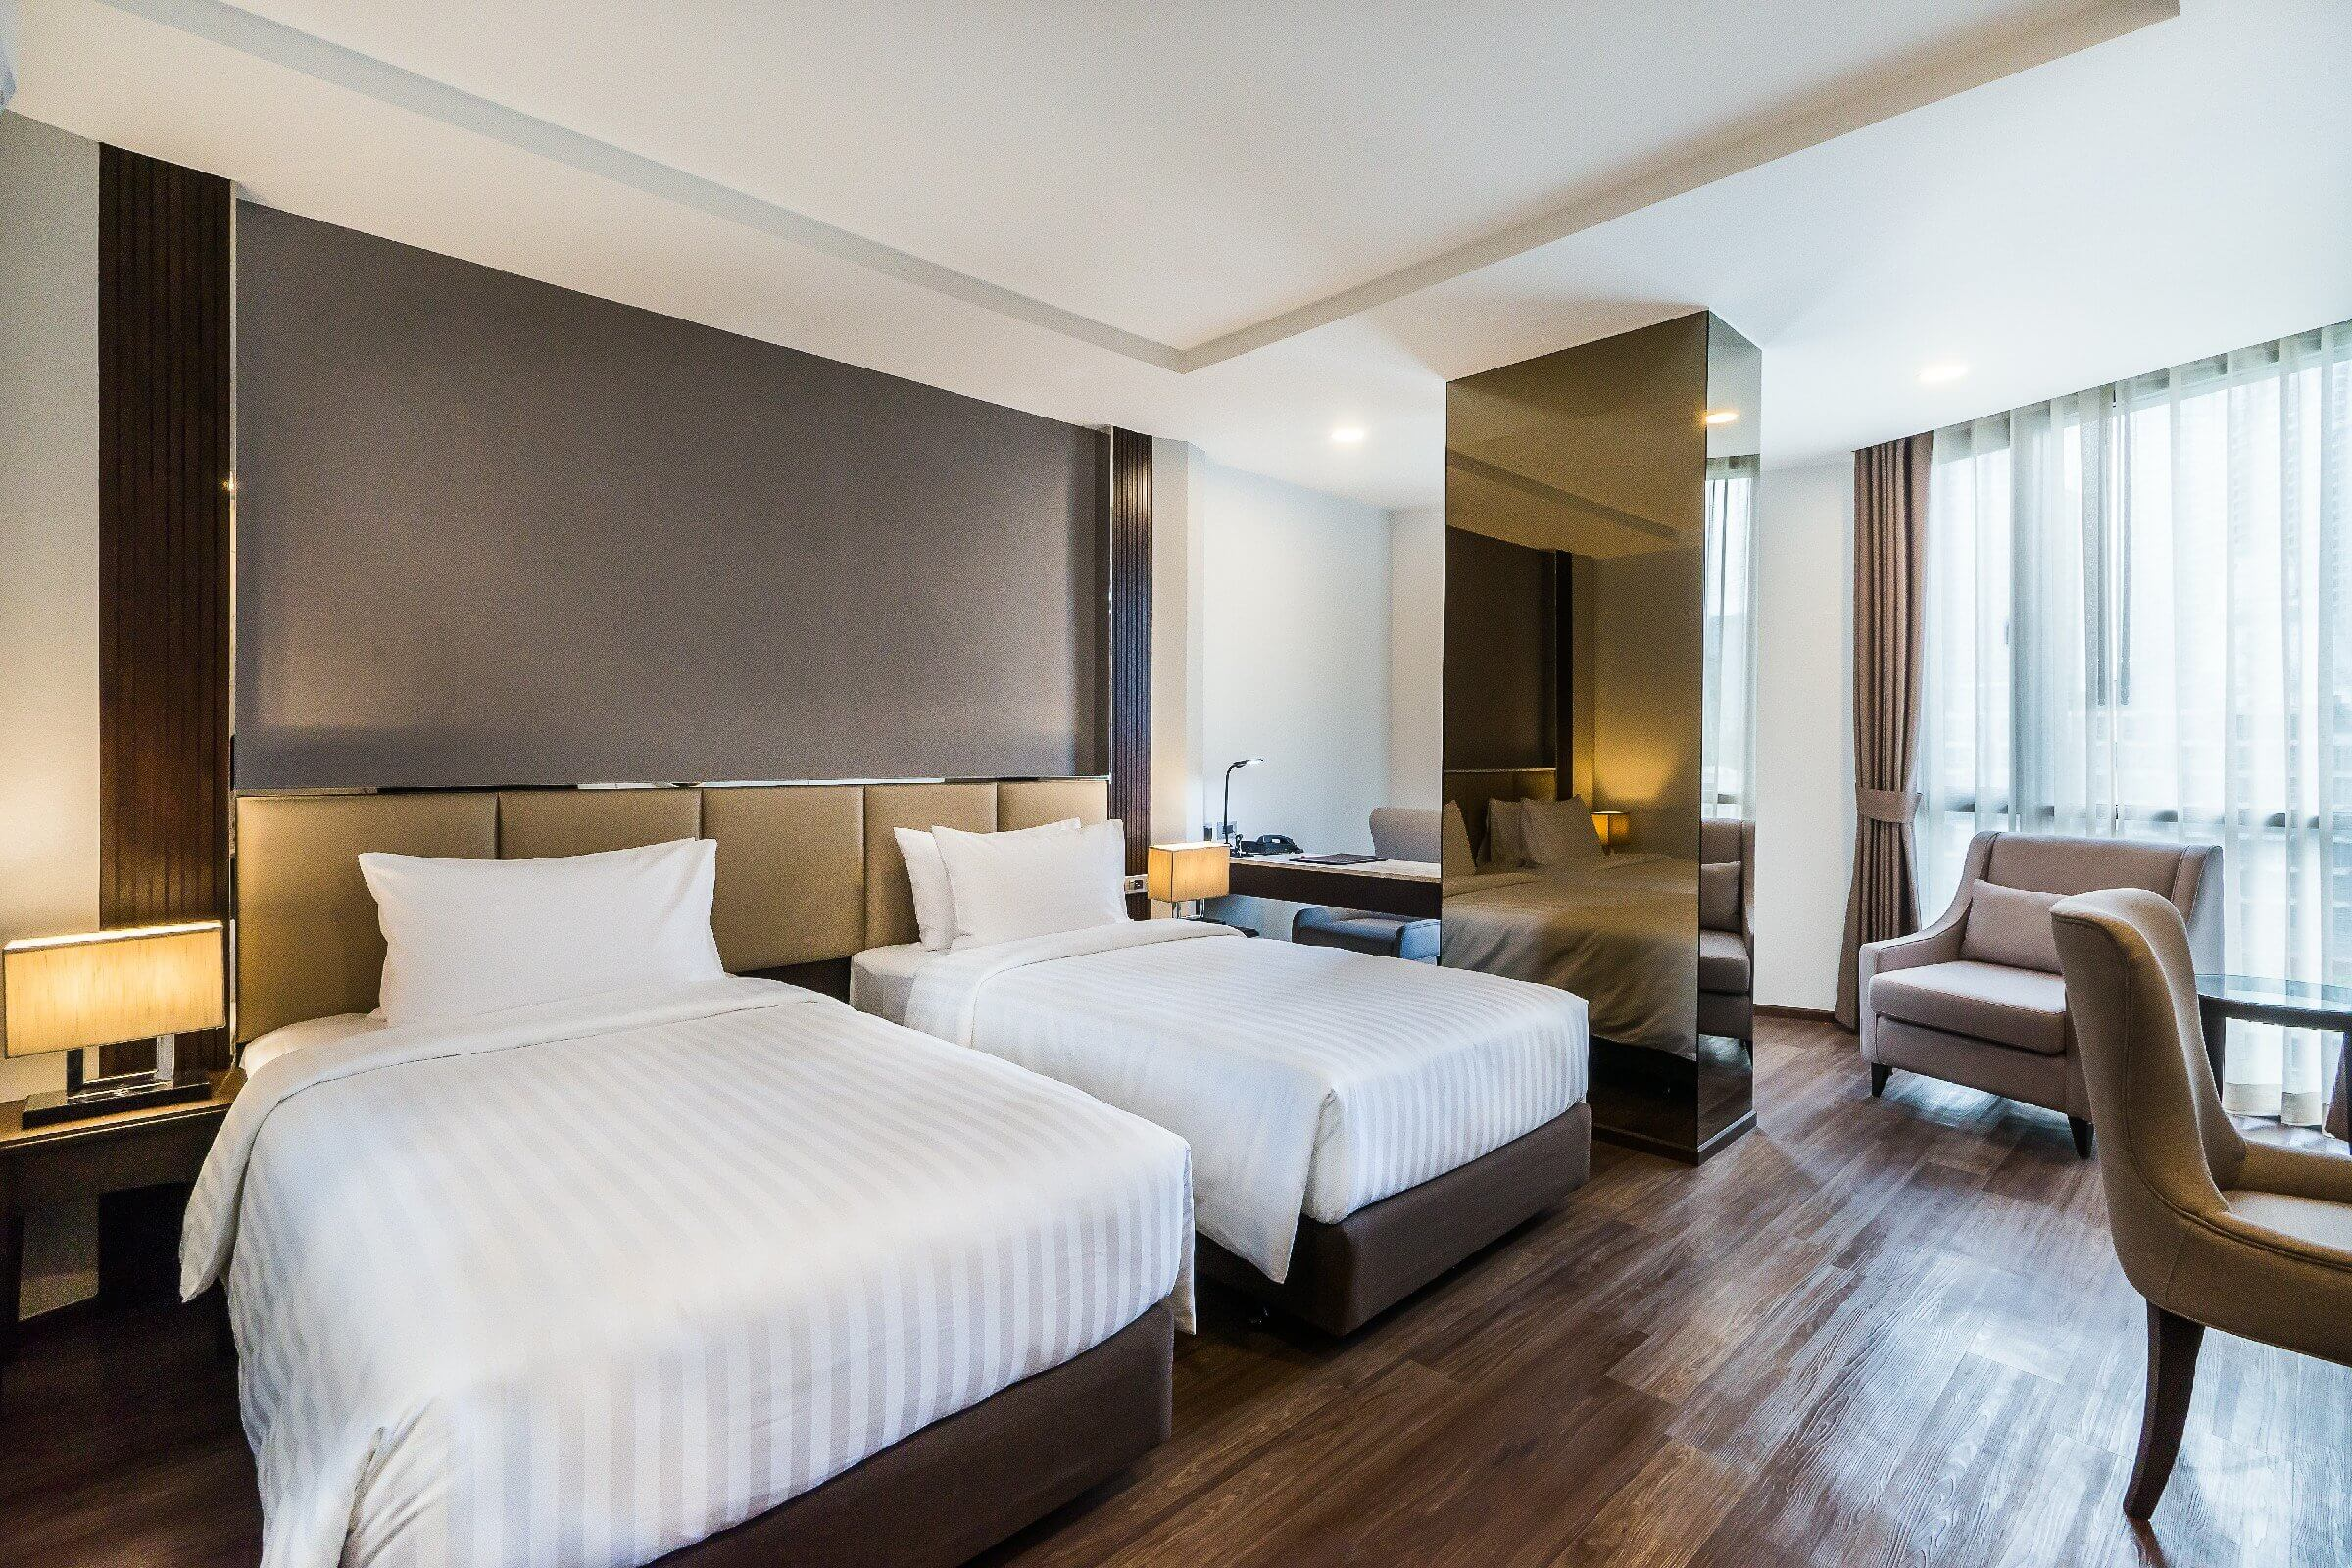 曼谷素坤逸2巷最佳西方舒心酒店 ASQ隔离住宿(图片来源:SureStay Plus Hotel by Best Western Sukhumvit 2官网)